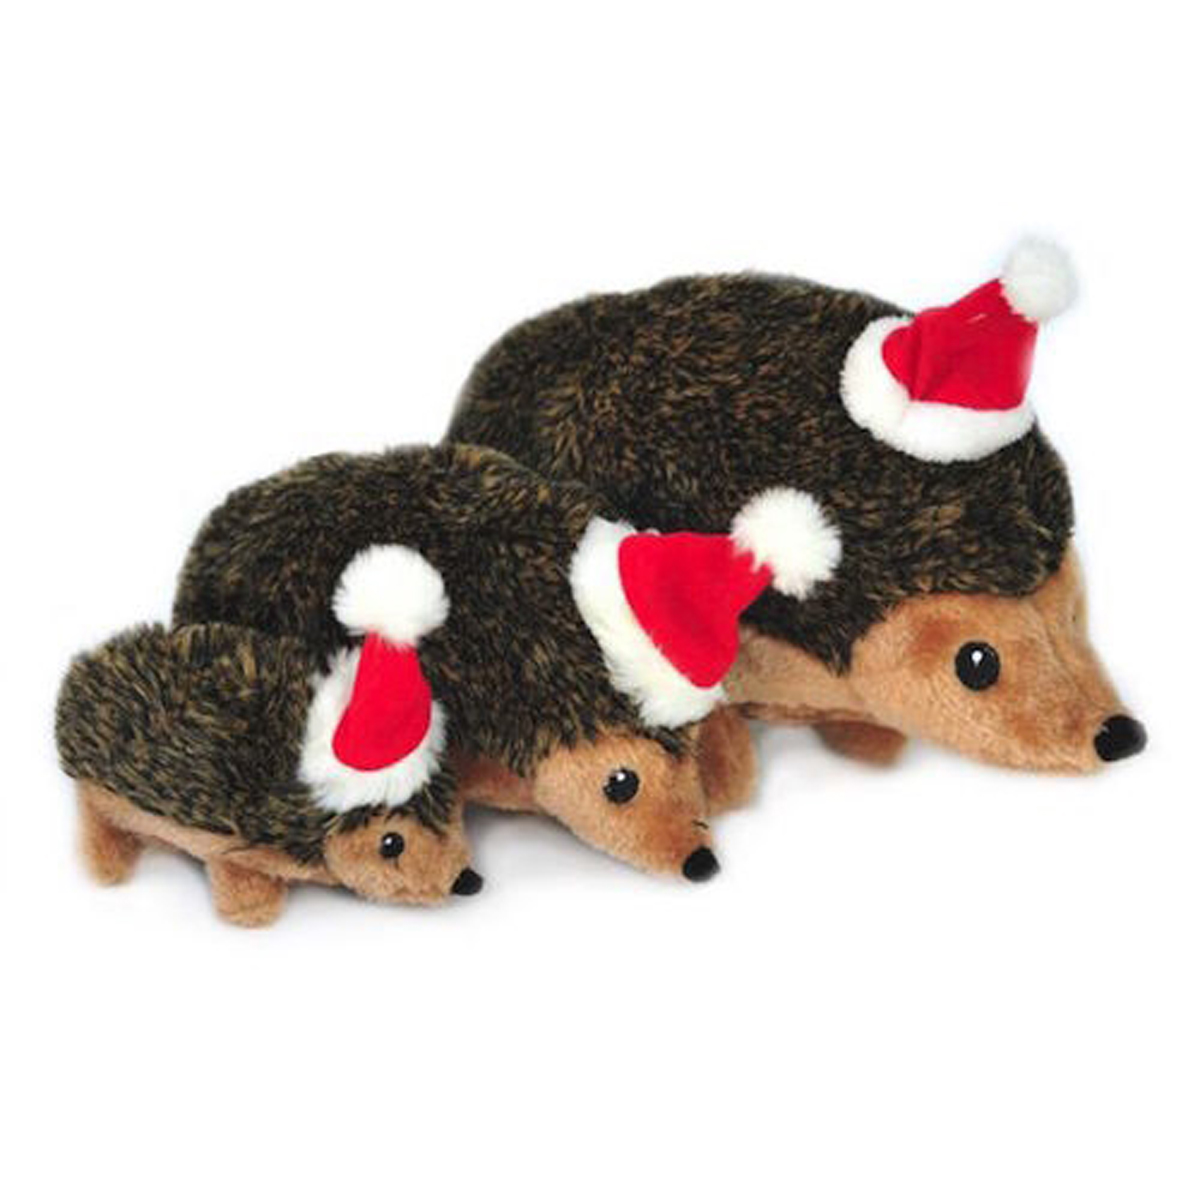 ZippyPaws Holiday Hedgehog Dog Toy